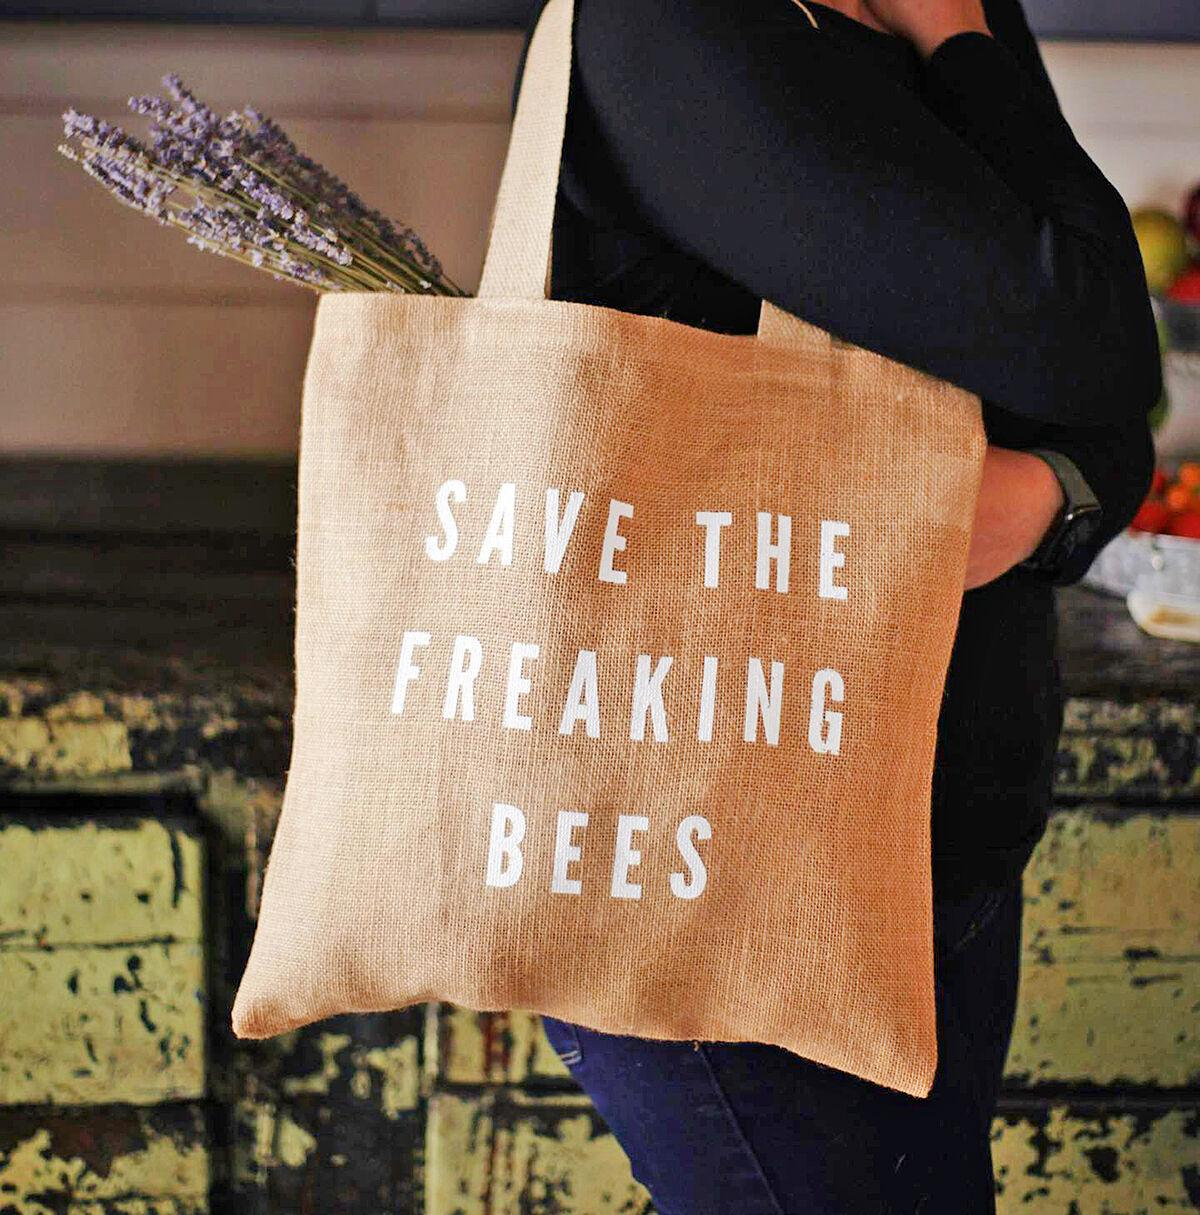 Save the freaking bees